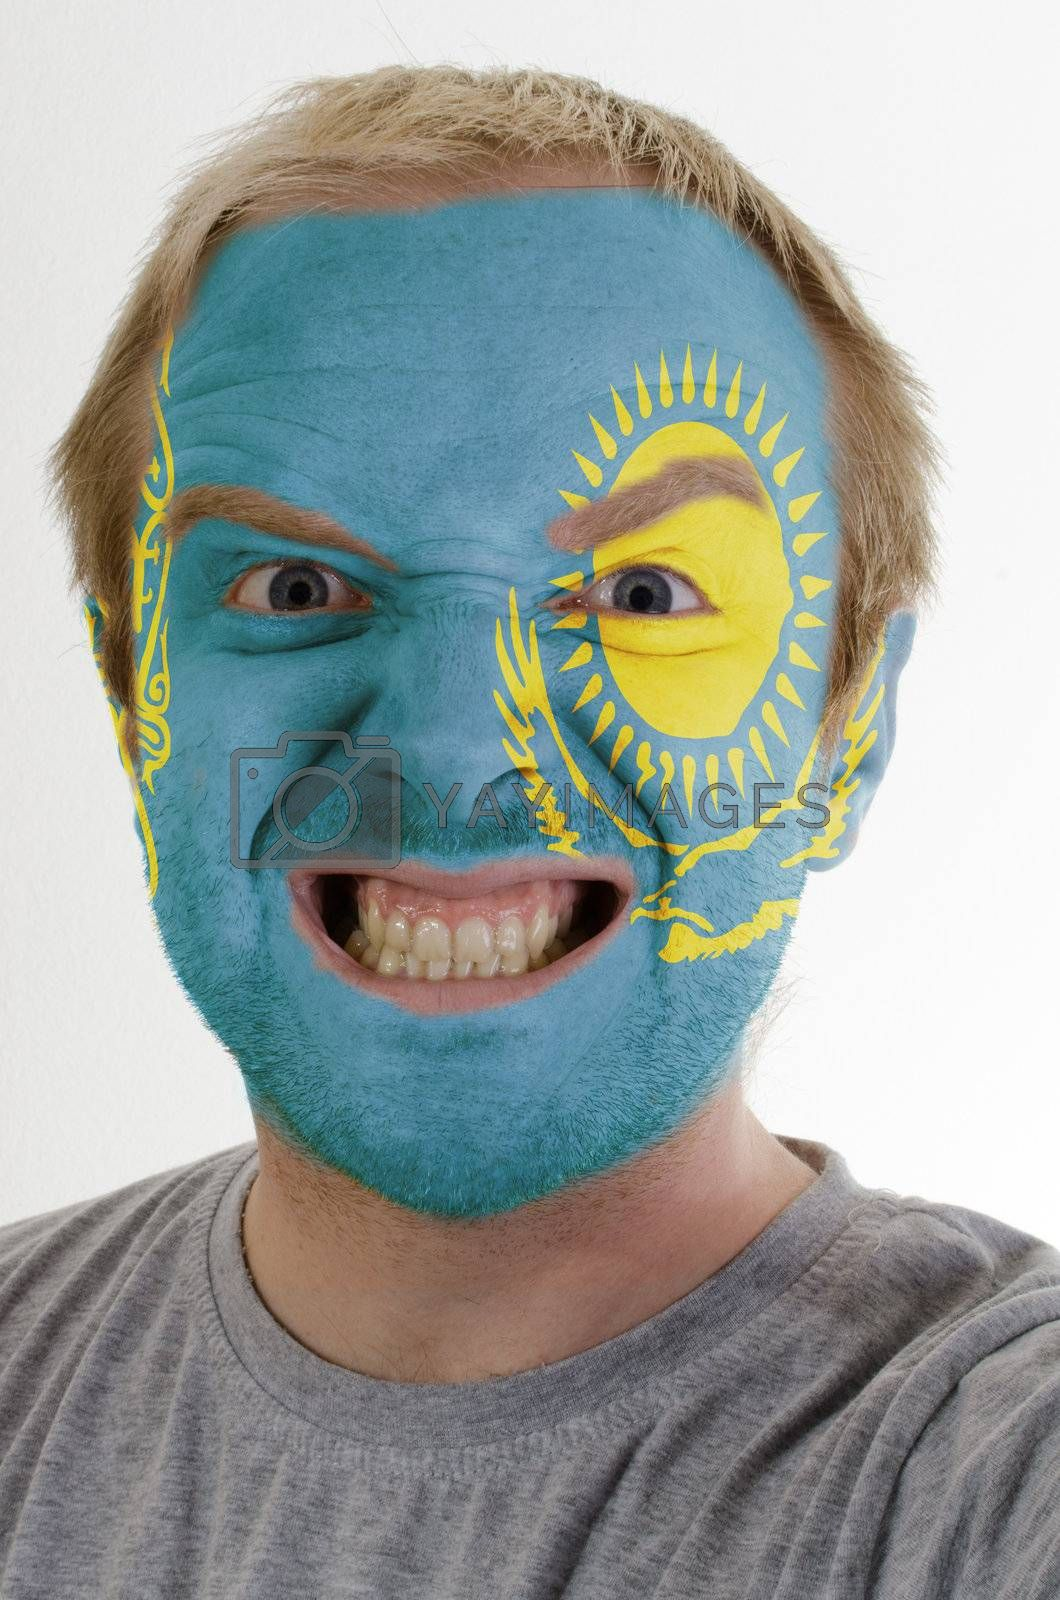 High key portrait of an angry man whose face is painted in colors of kazakstan flag